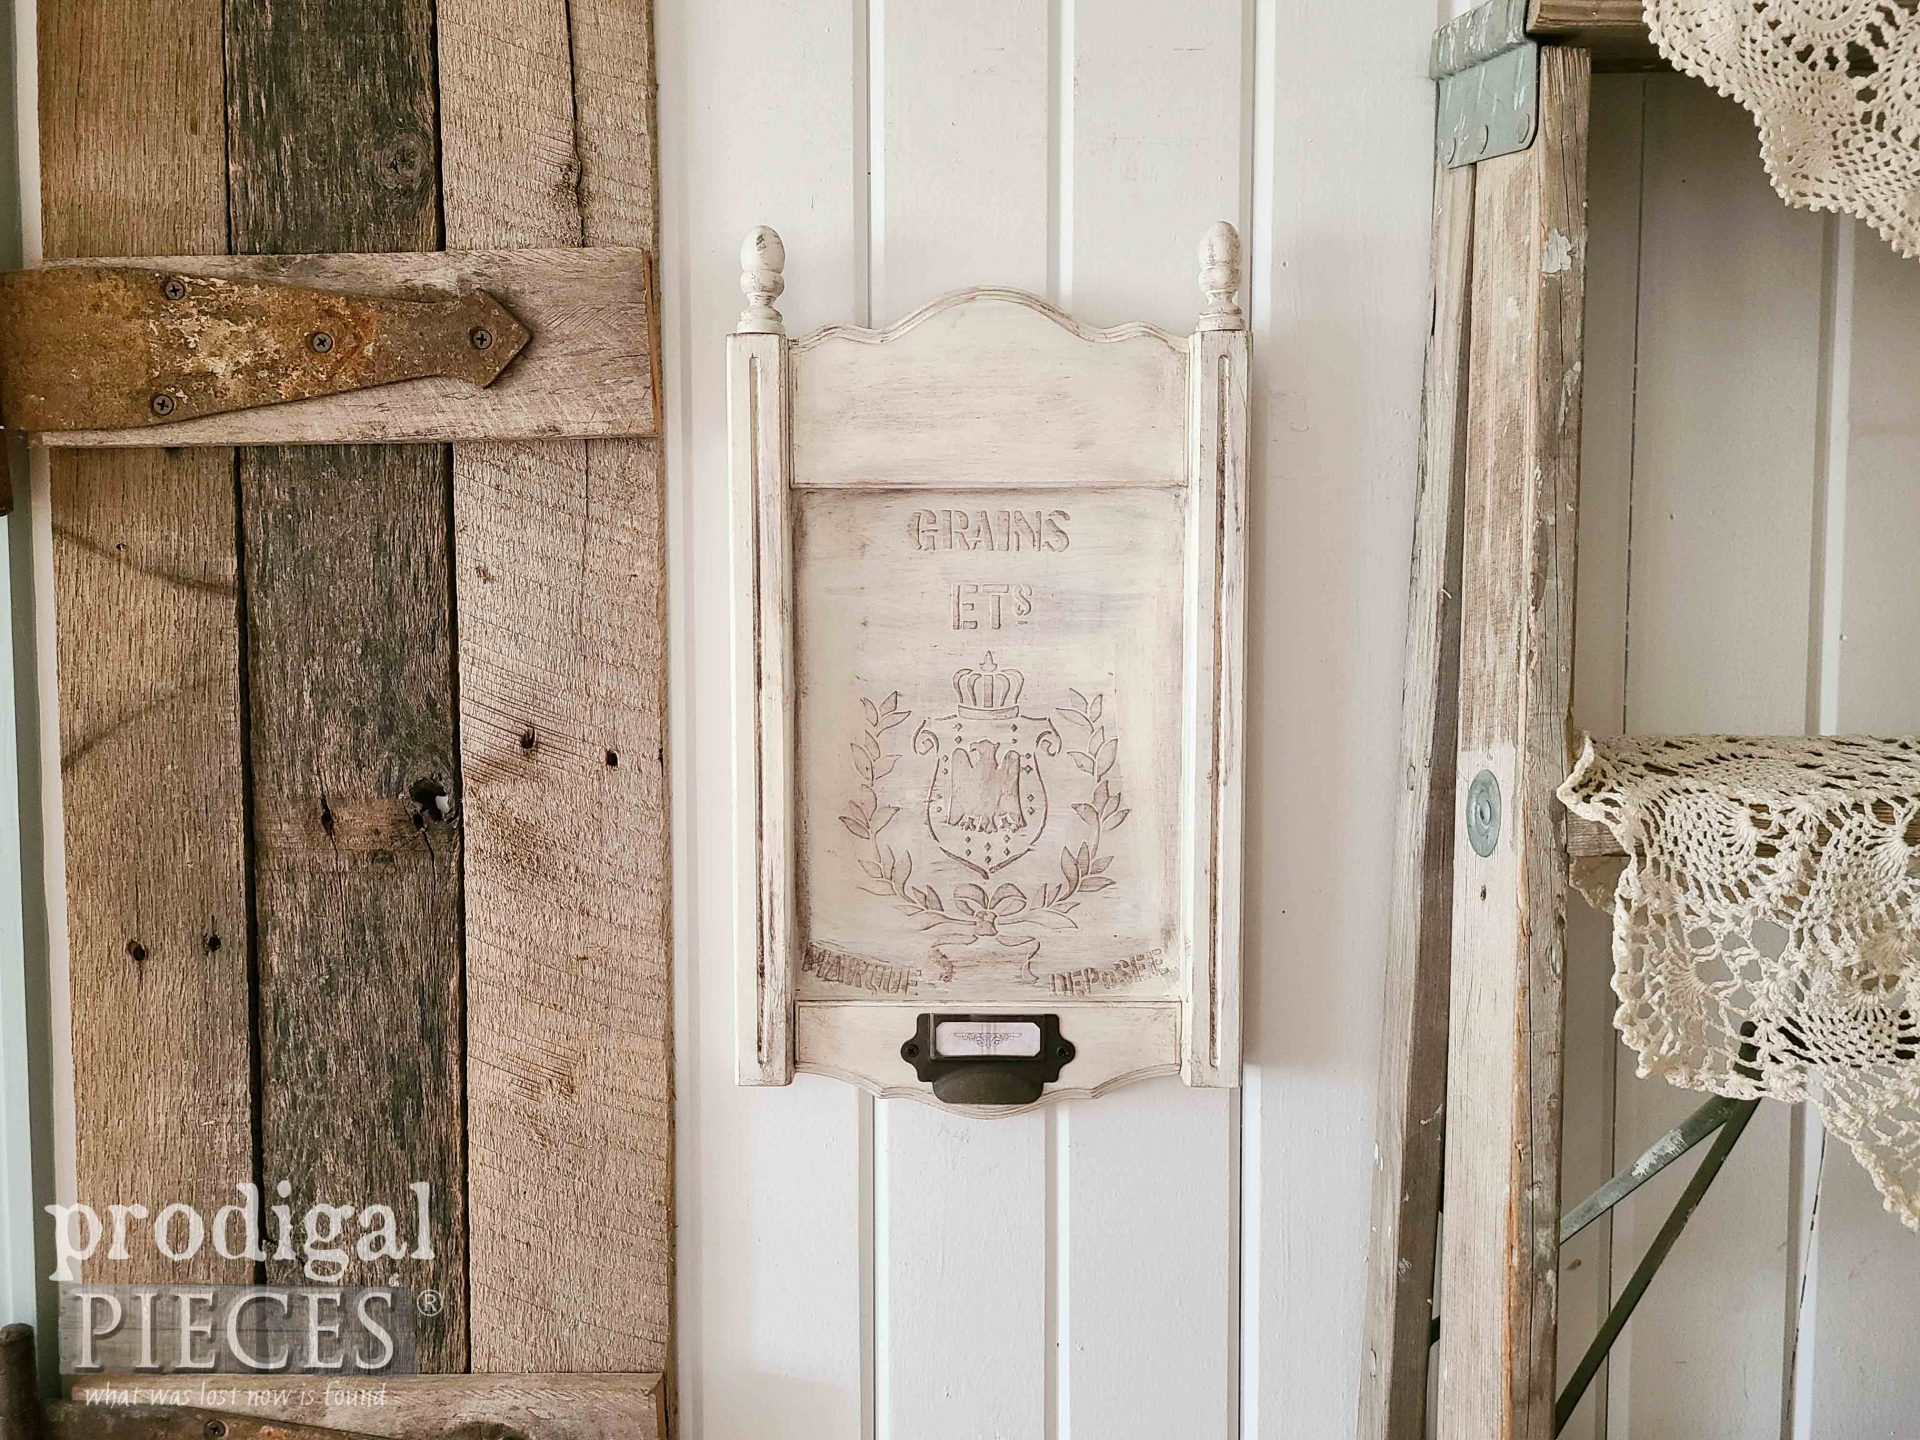 Farmhouse Chic Wall Art from Upcycled Frame with DIY Embossing by Larissa of Prodigal Pieces | prodigalpieces.com #prodigalpieces #farmhouse #chic #wallart